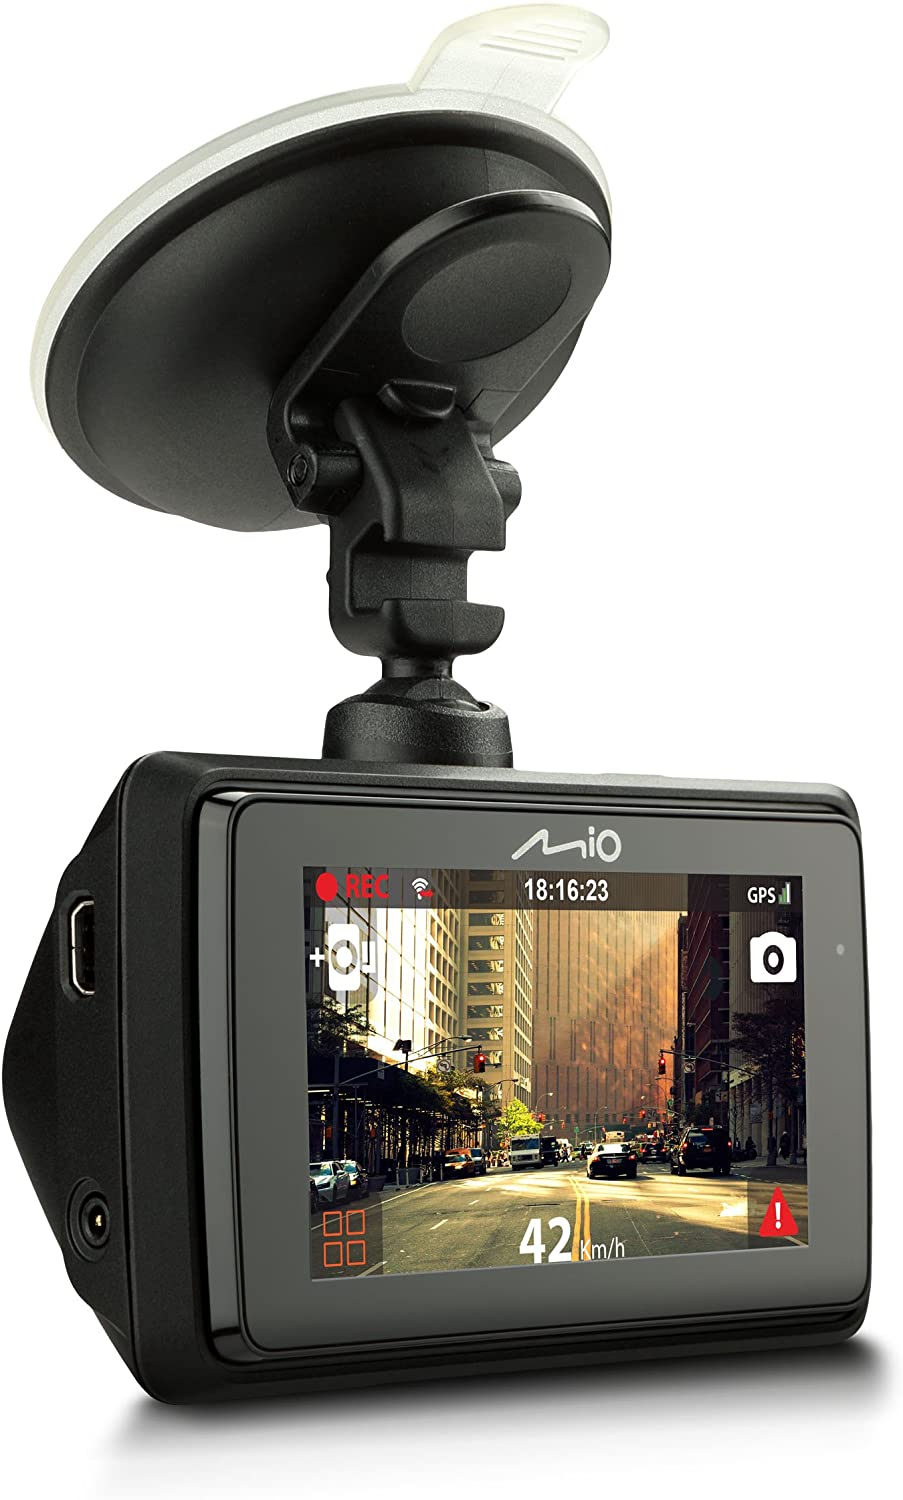 Mio Mivue A30 Camera With 140 Degree Wide Angle View Computers Accessories